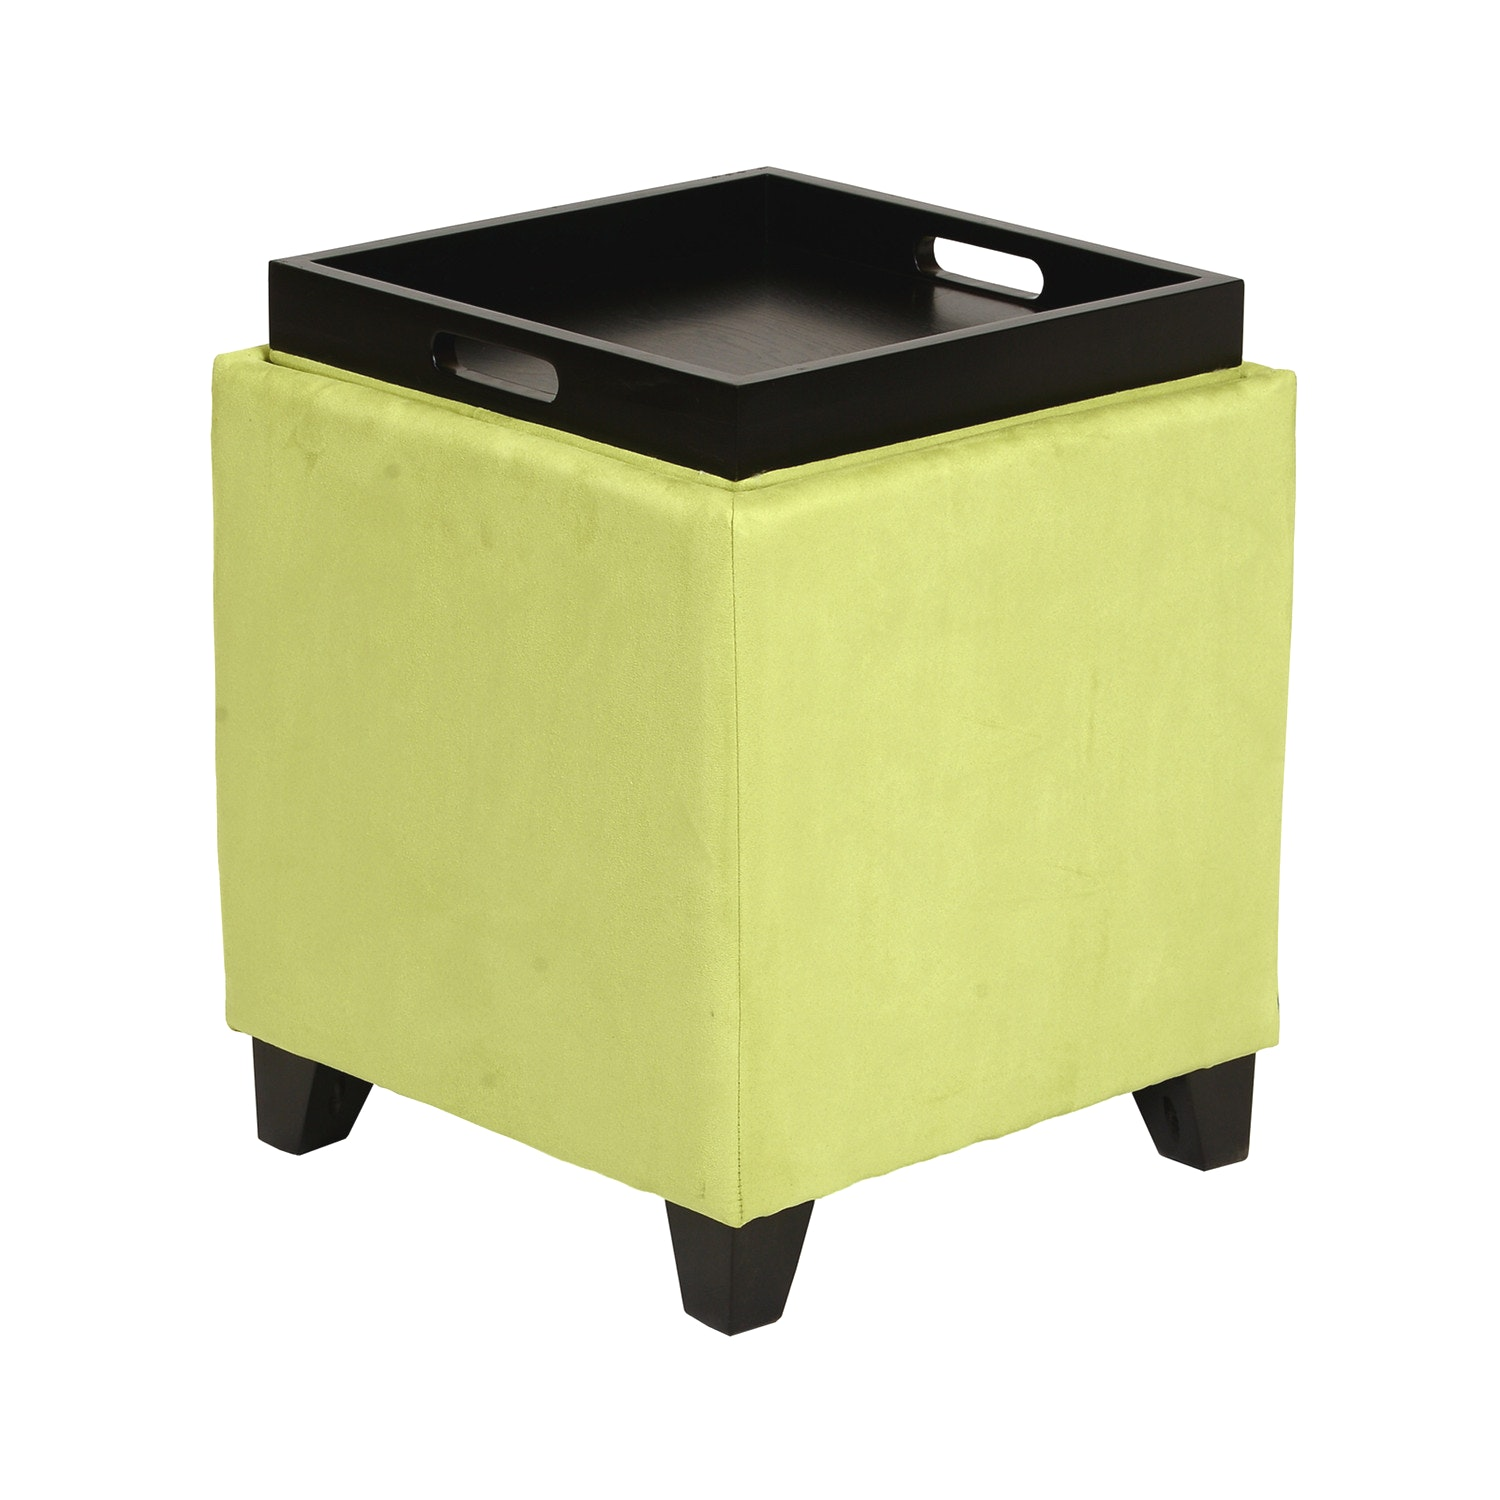 Small Cube Ottoman | Cube Foot Stool | Storage Cube Ottoman